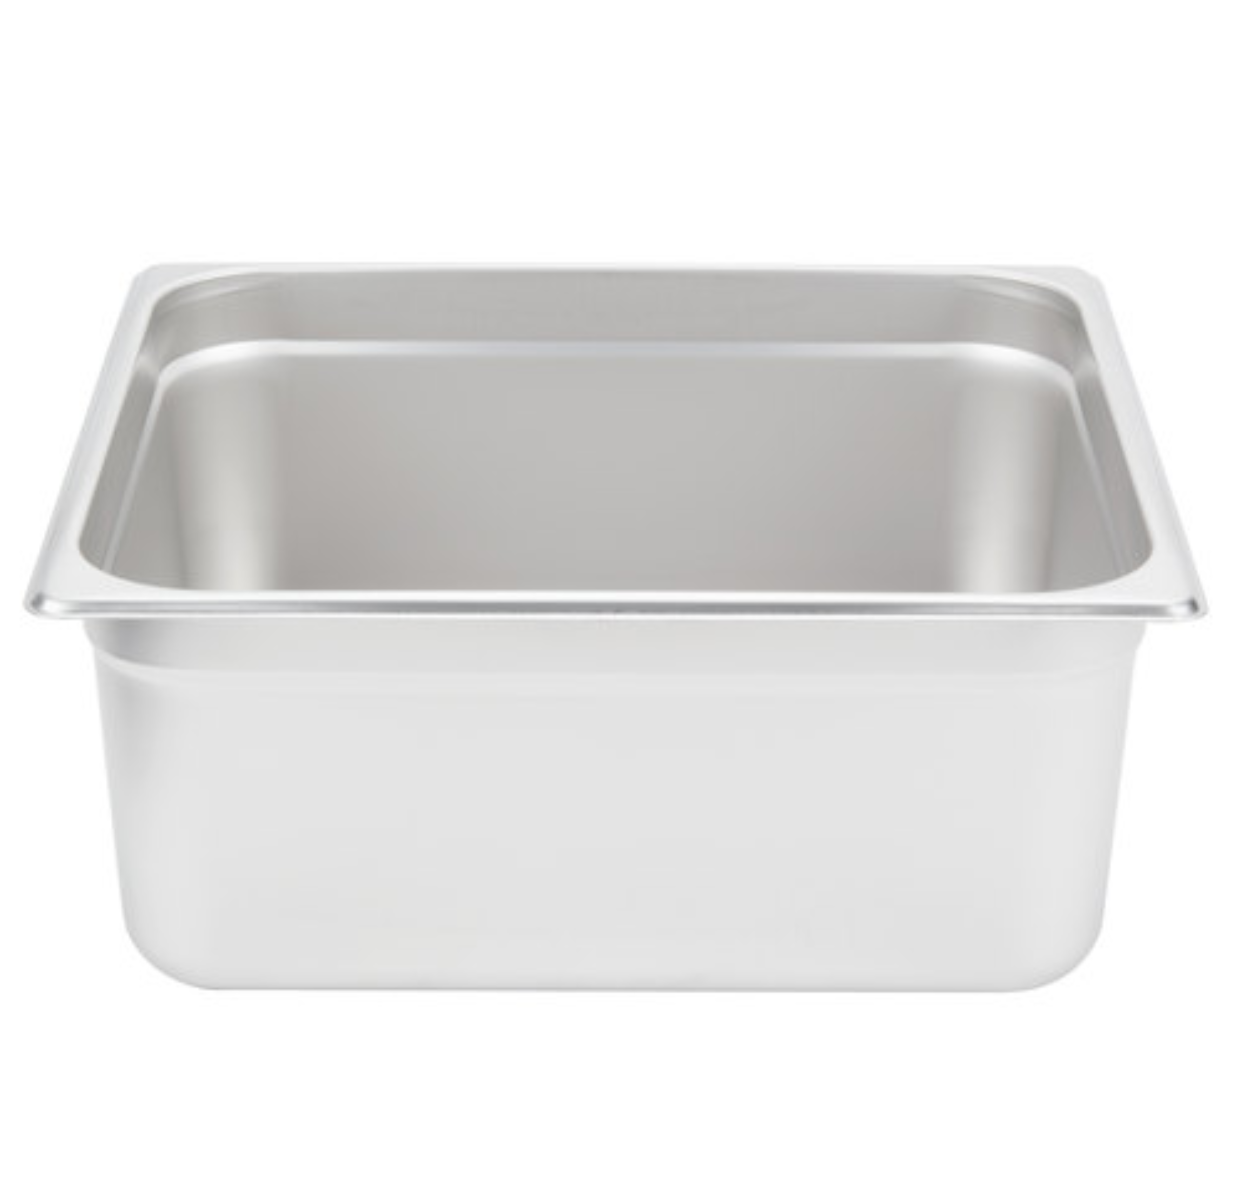 Thunder Group Stainless Steel Steam, Food, and Hotel Pan 2/3 Size (Case), Stainless Steel - eKitchenary